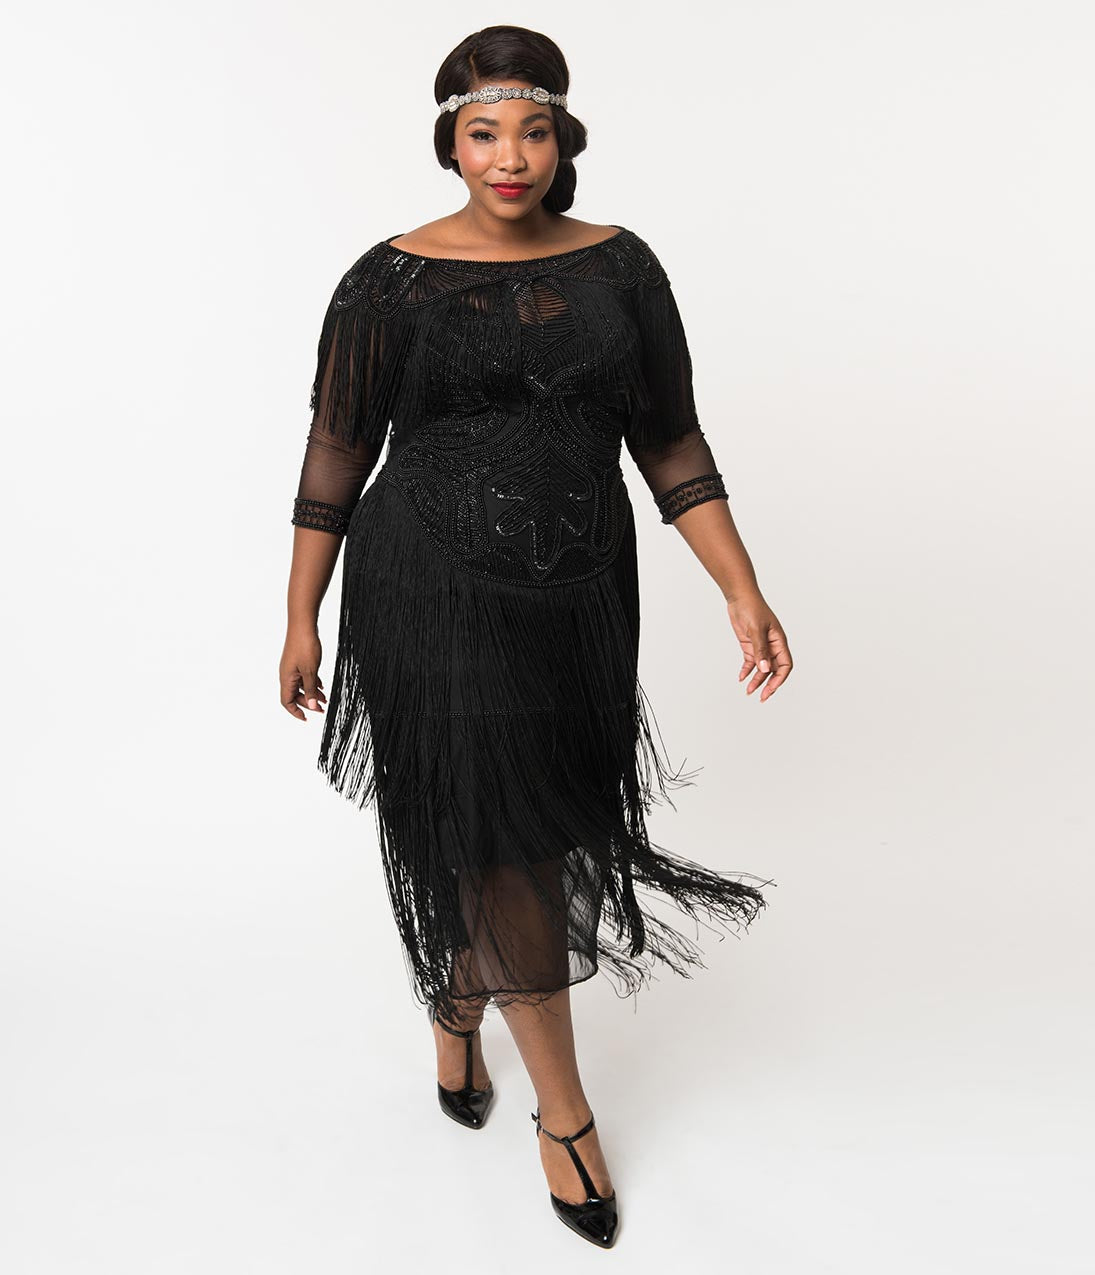 Flapper Dresses & Quality Flapper Costumes Plus Size 1920S Style Black Beaded Mesh Glam Fringe Flapper Maxi Gown $186.00 AT vintagedancer.com